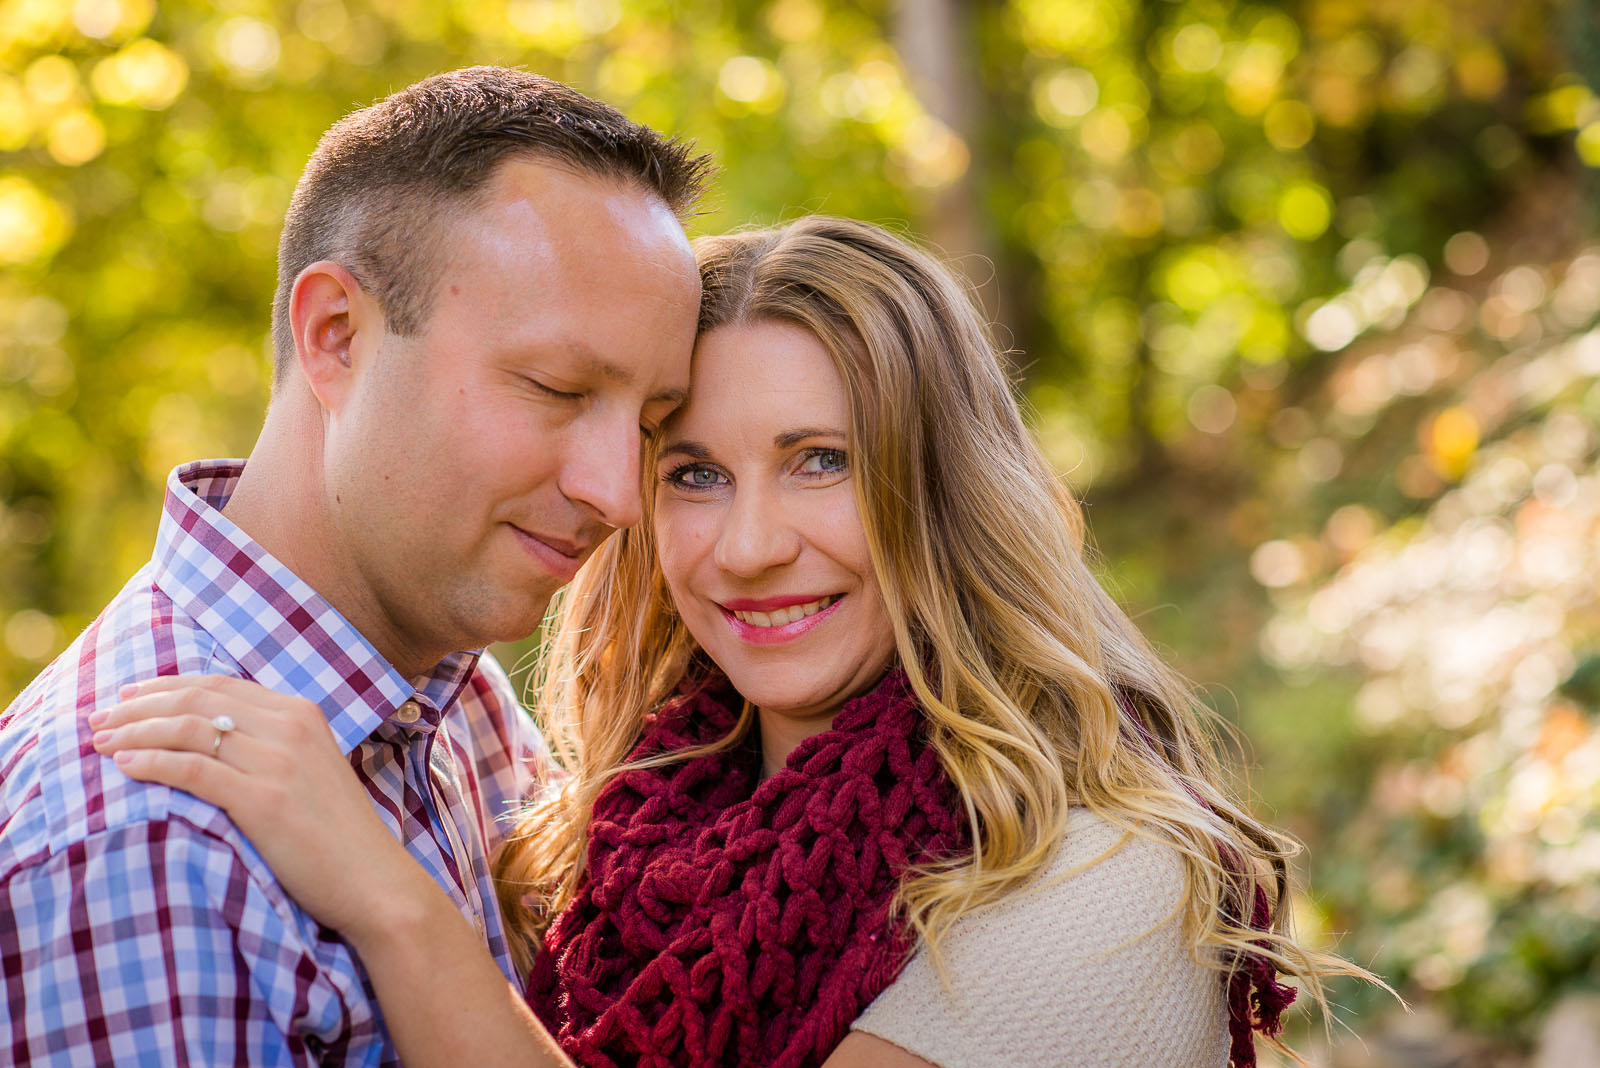 Eric_and_Christy_Photography_Blog_Megan_Nate_Engagement-7